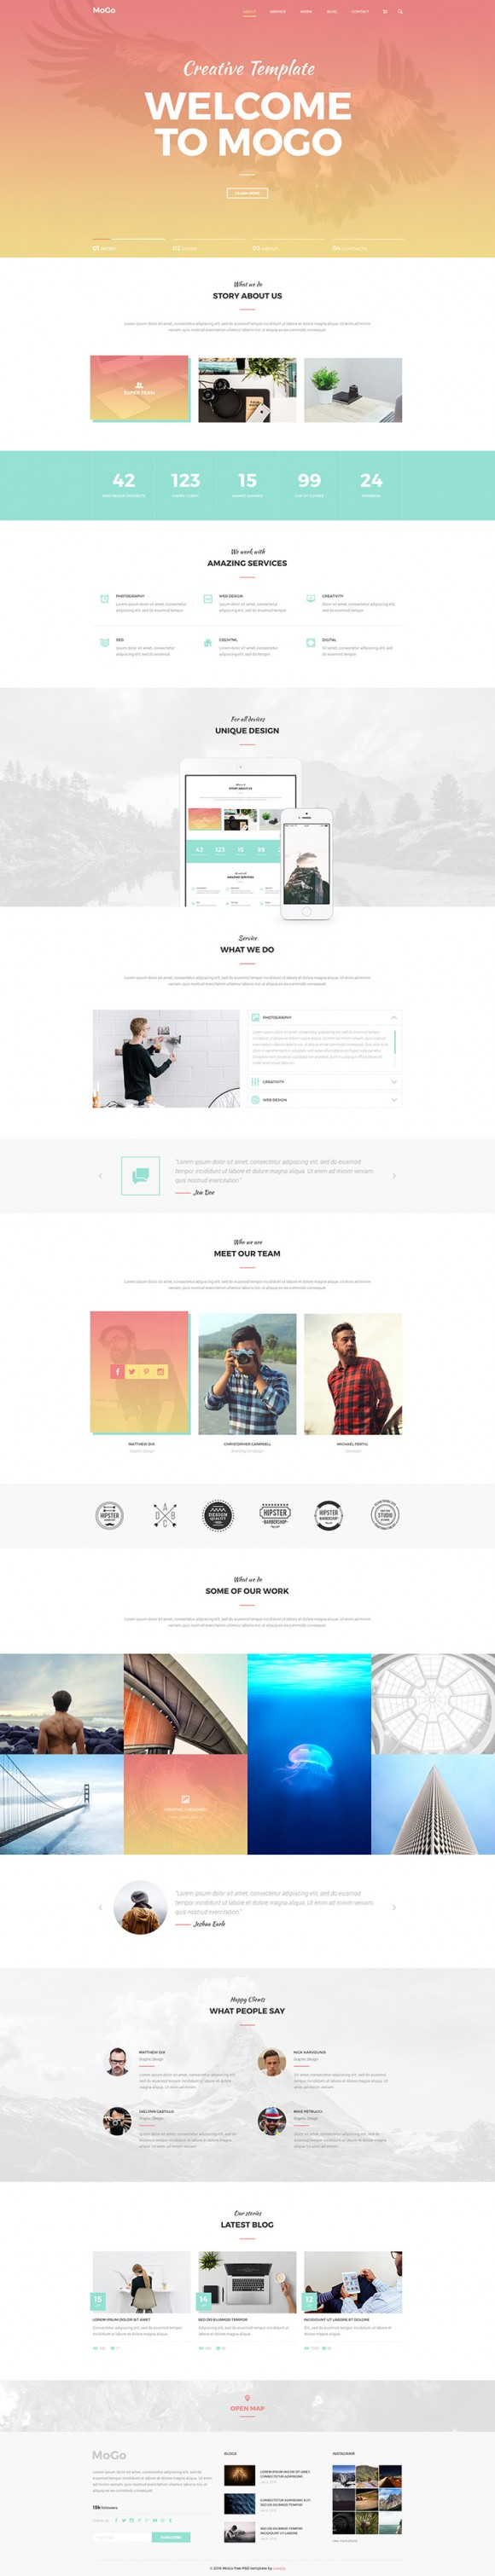 MoGo: Free one page PSD template - Preview image